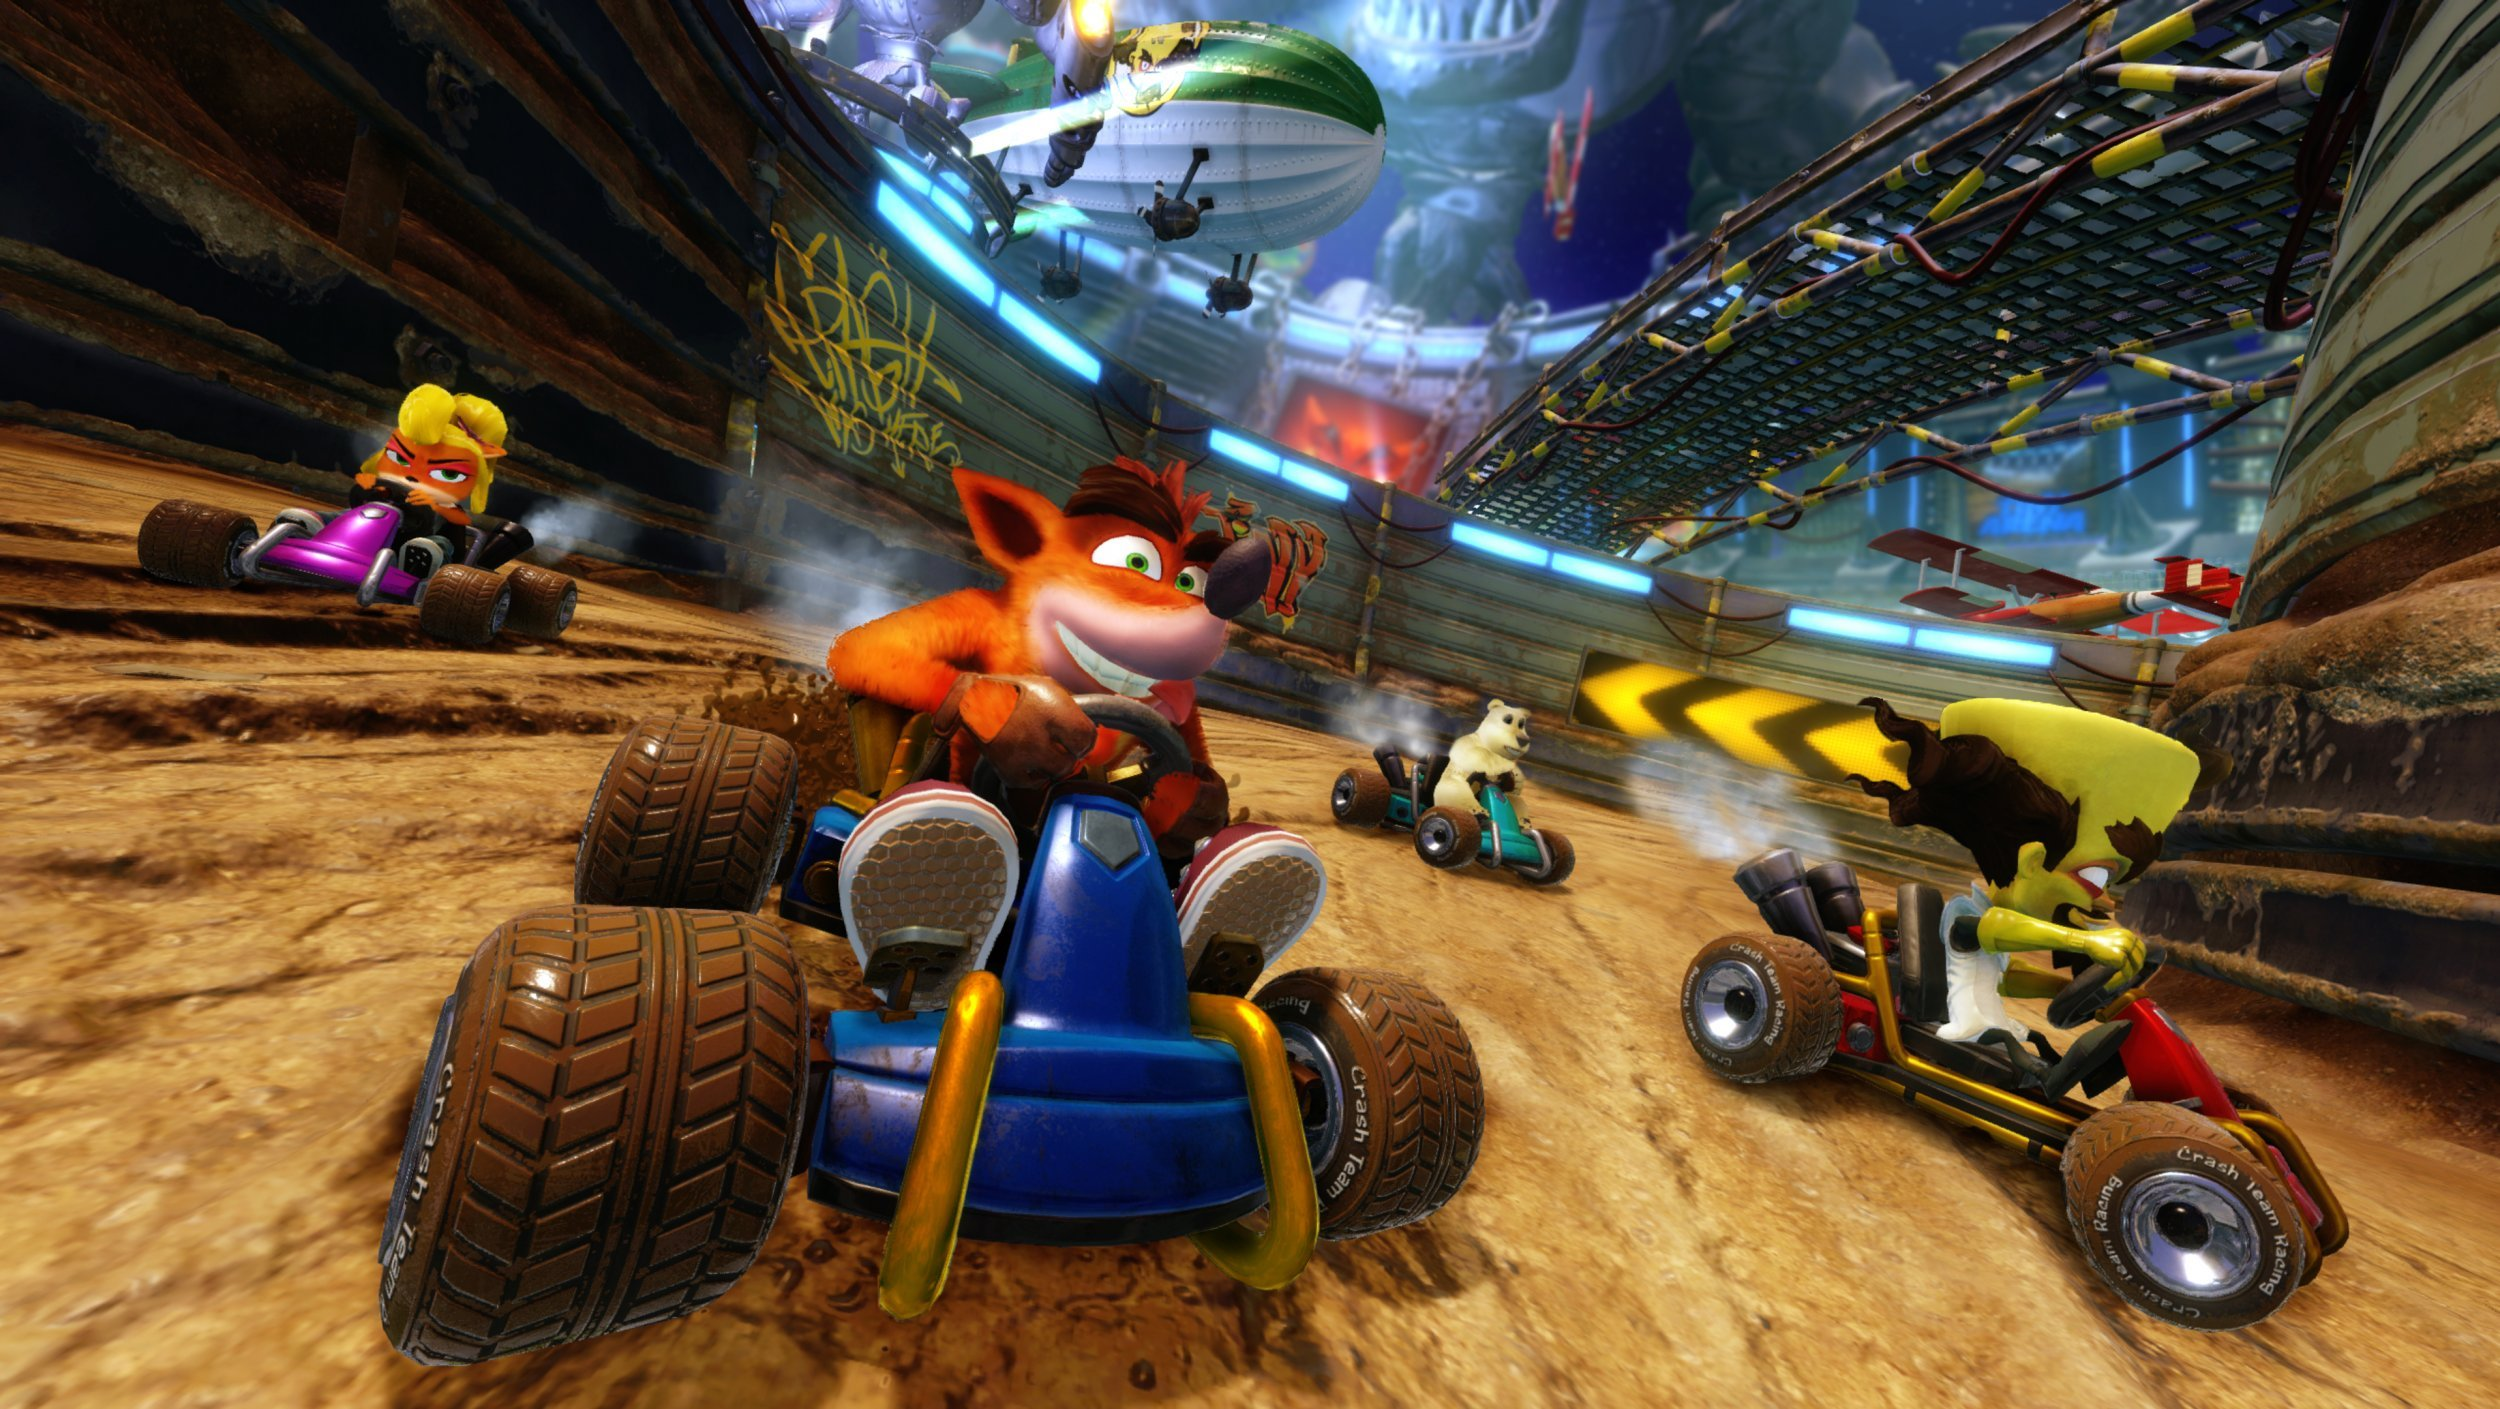 Both local and online multiplayer options are available in Crash Team Racing Nitro-Fueled.